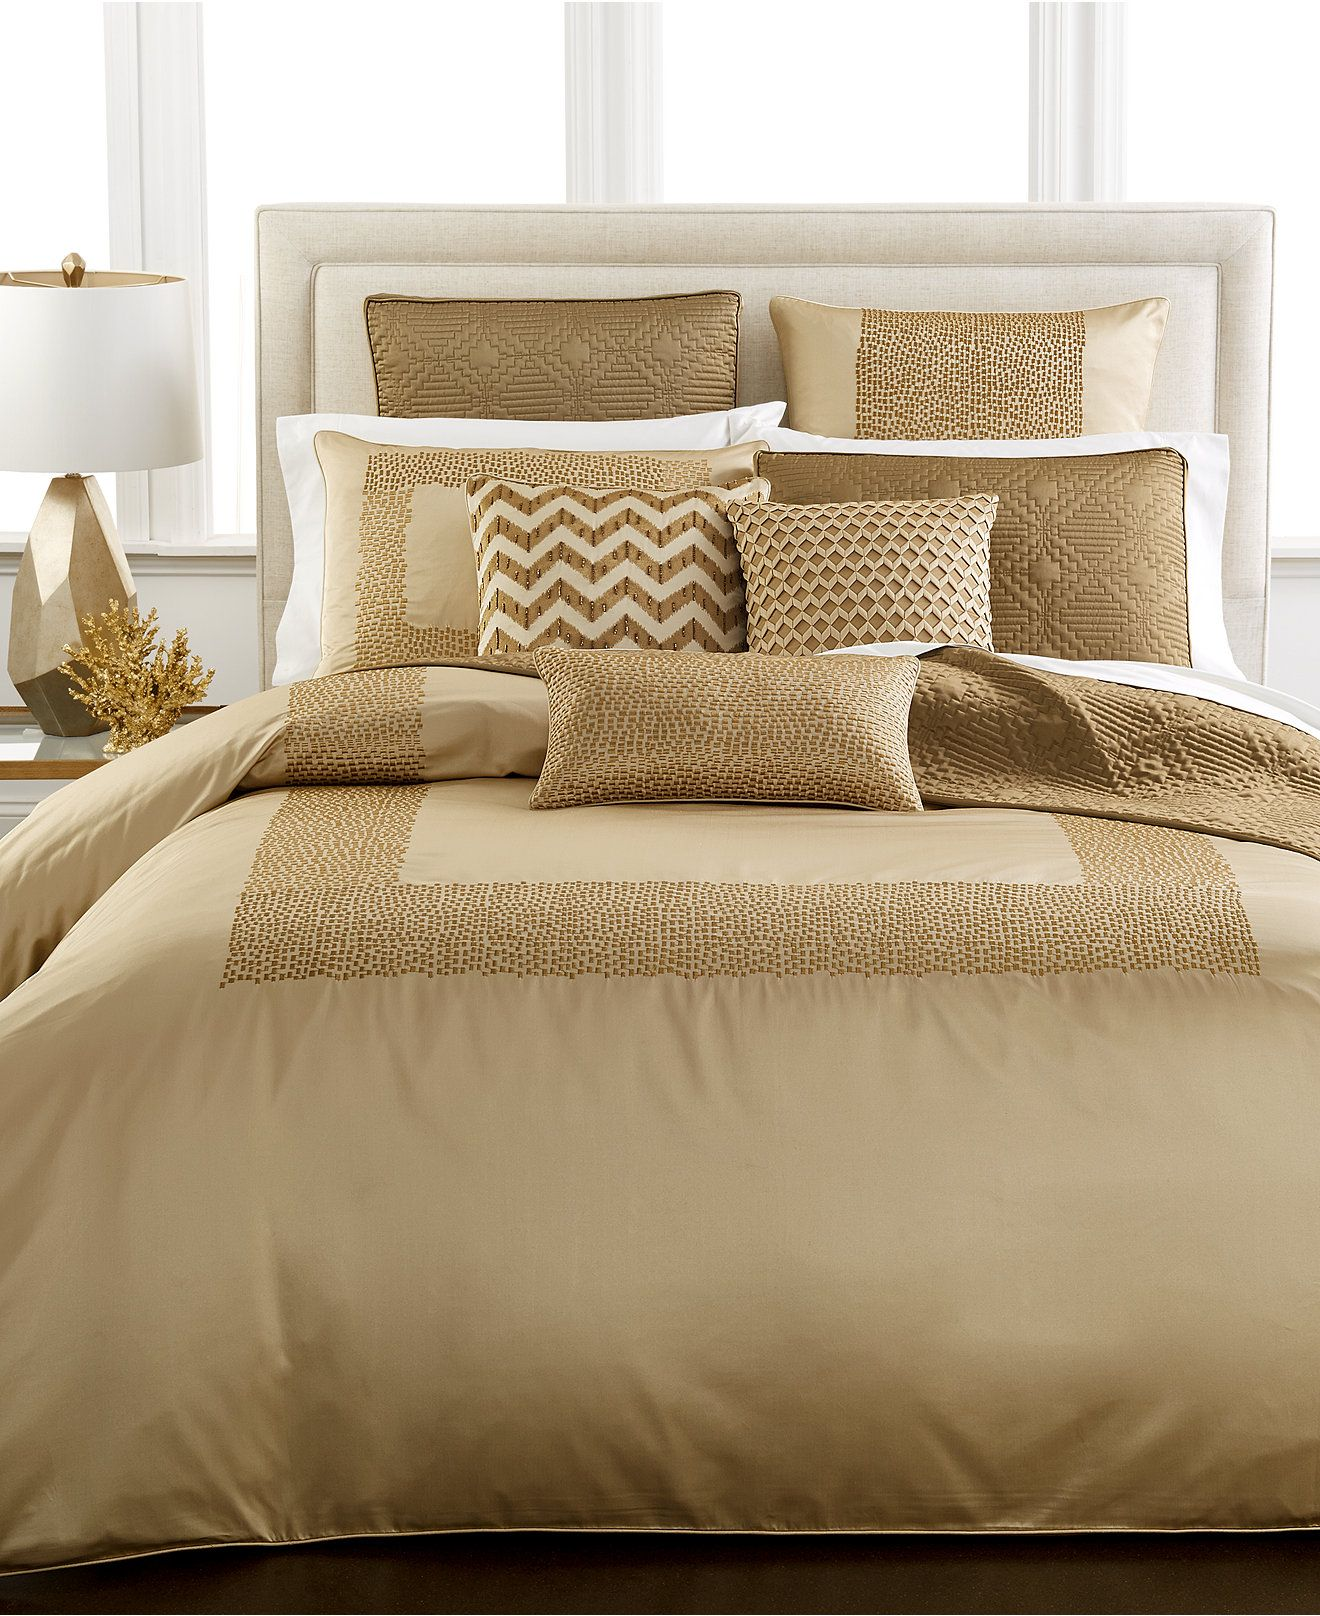 Hotel Collection Mosaic Bedding Collection Bedding Collections Bed Bath Macy S Bed Linens Luxury Bed Linen Sets Gold Bedding Sets